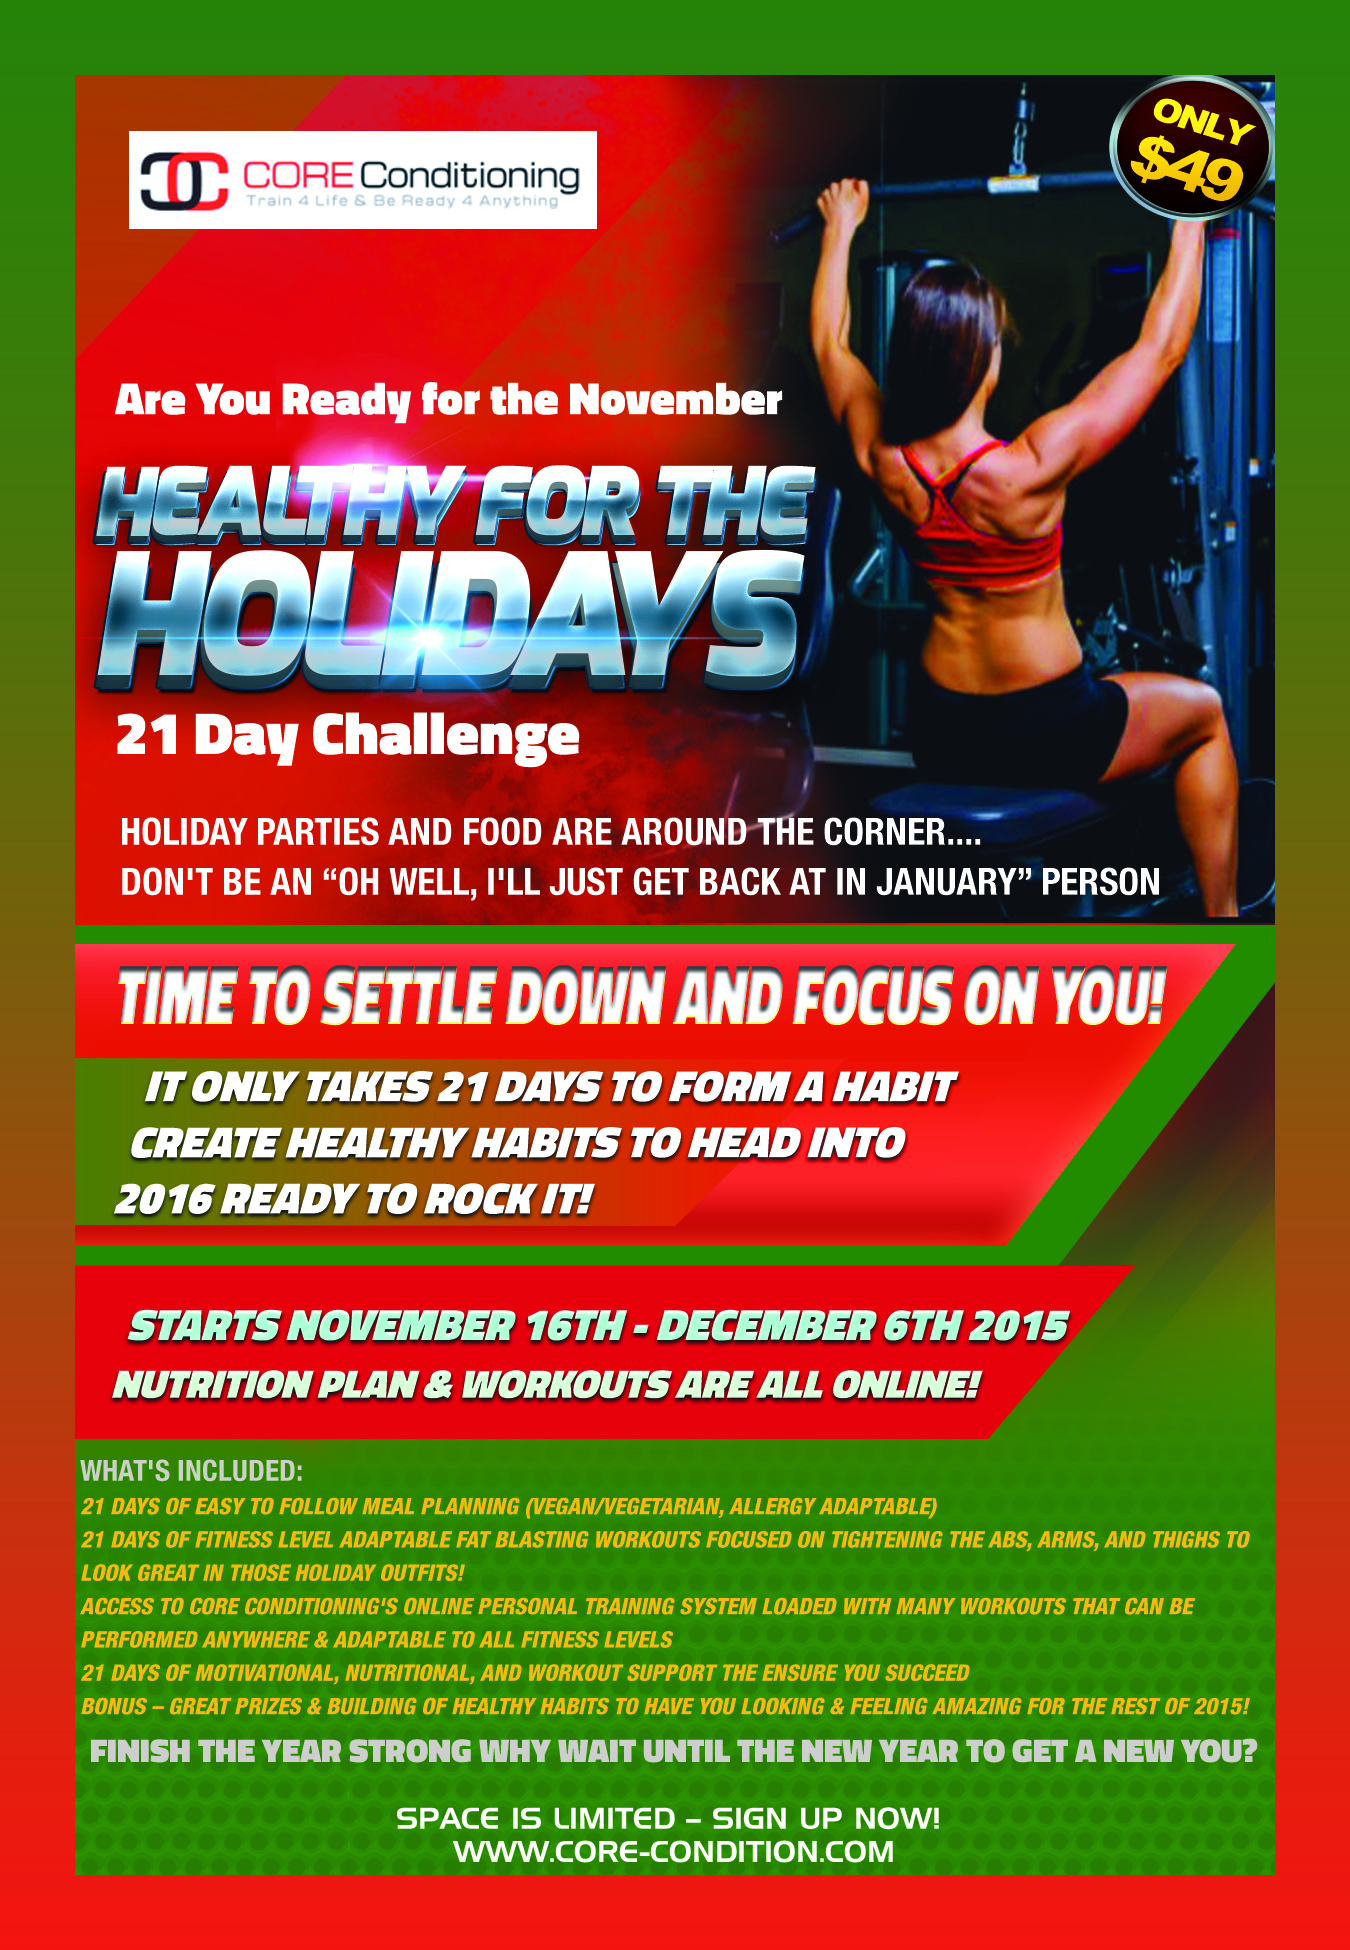 Are You Up For the Challenge? Register Now for the November Healthy For The Holidays 21 Day Challenge